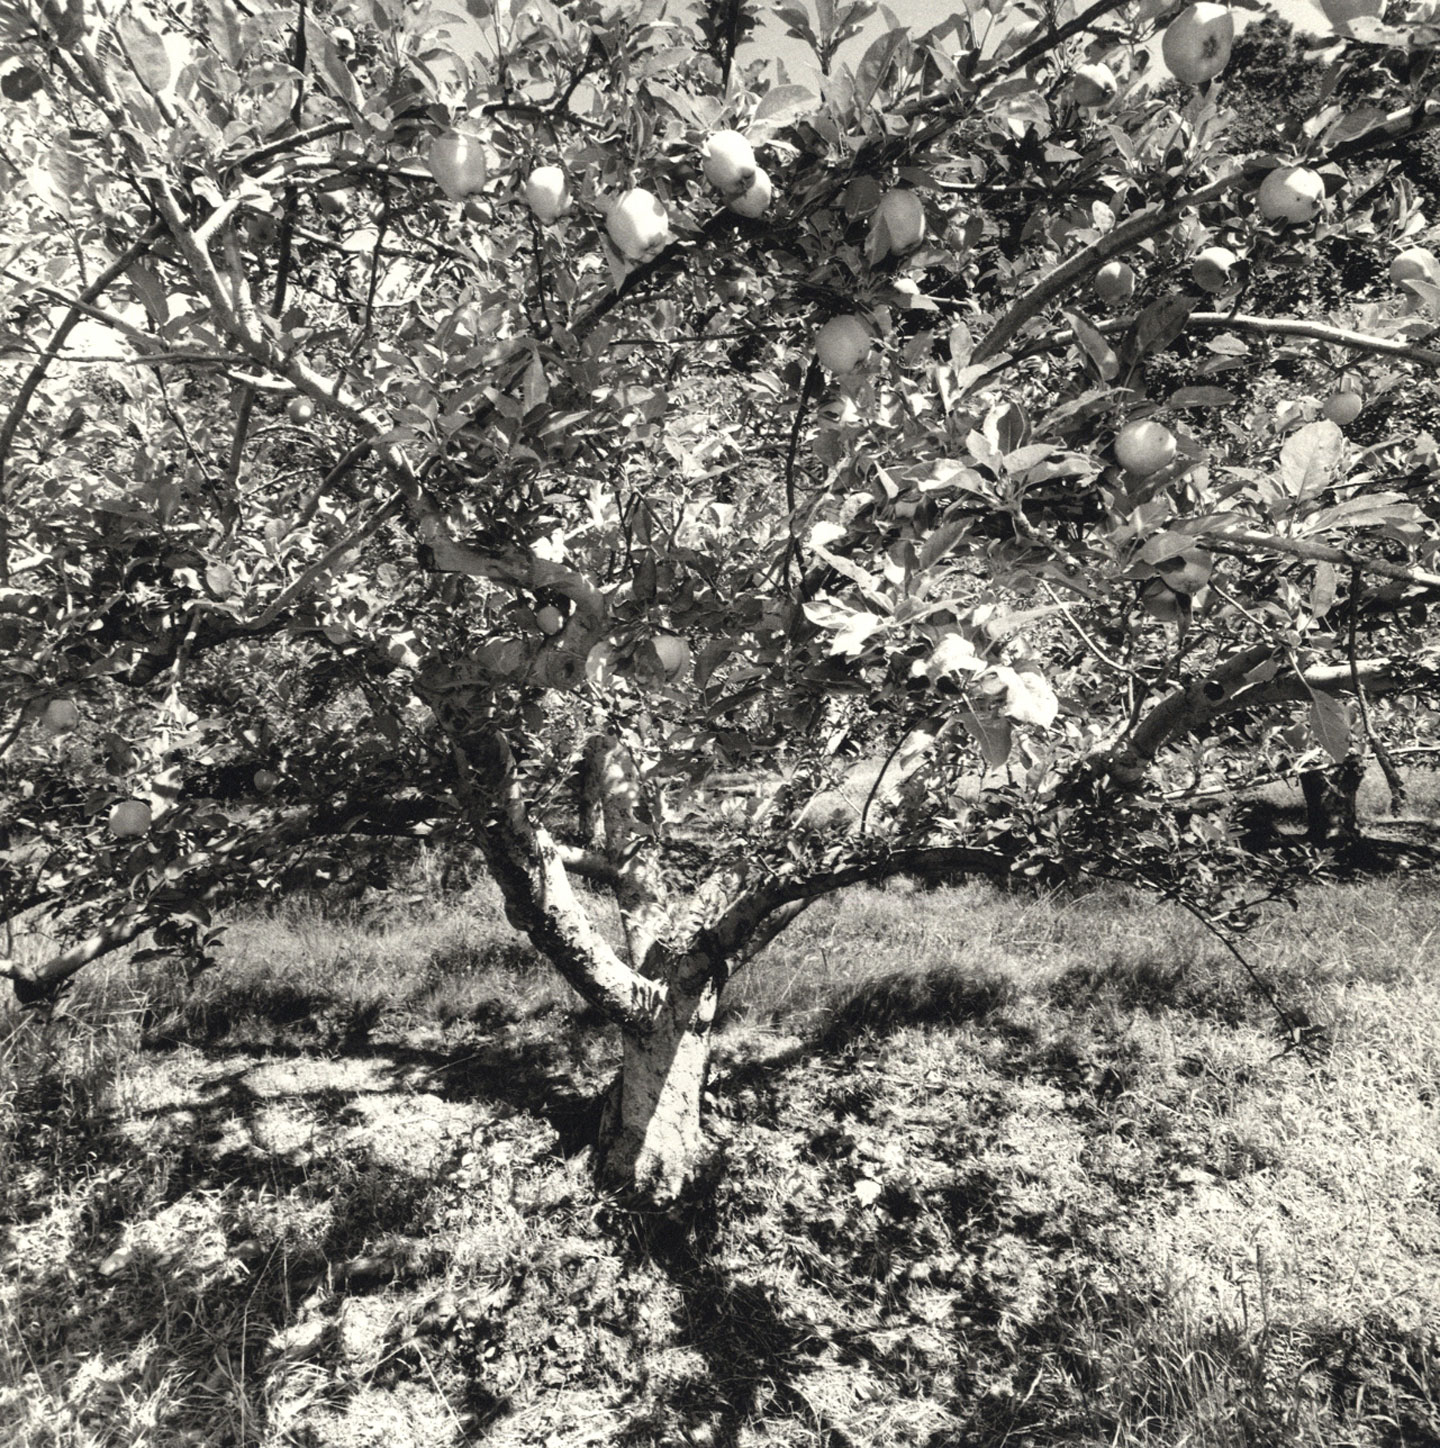 Lee Friedlander: Apples and Olives [SIGNED]